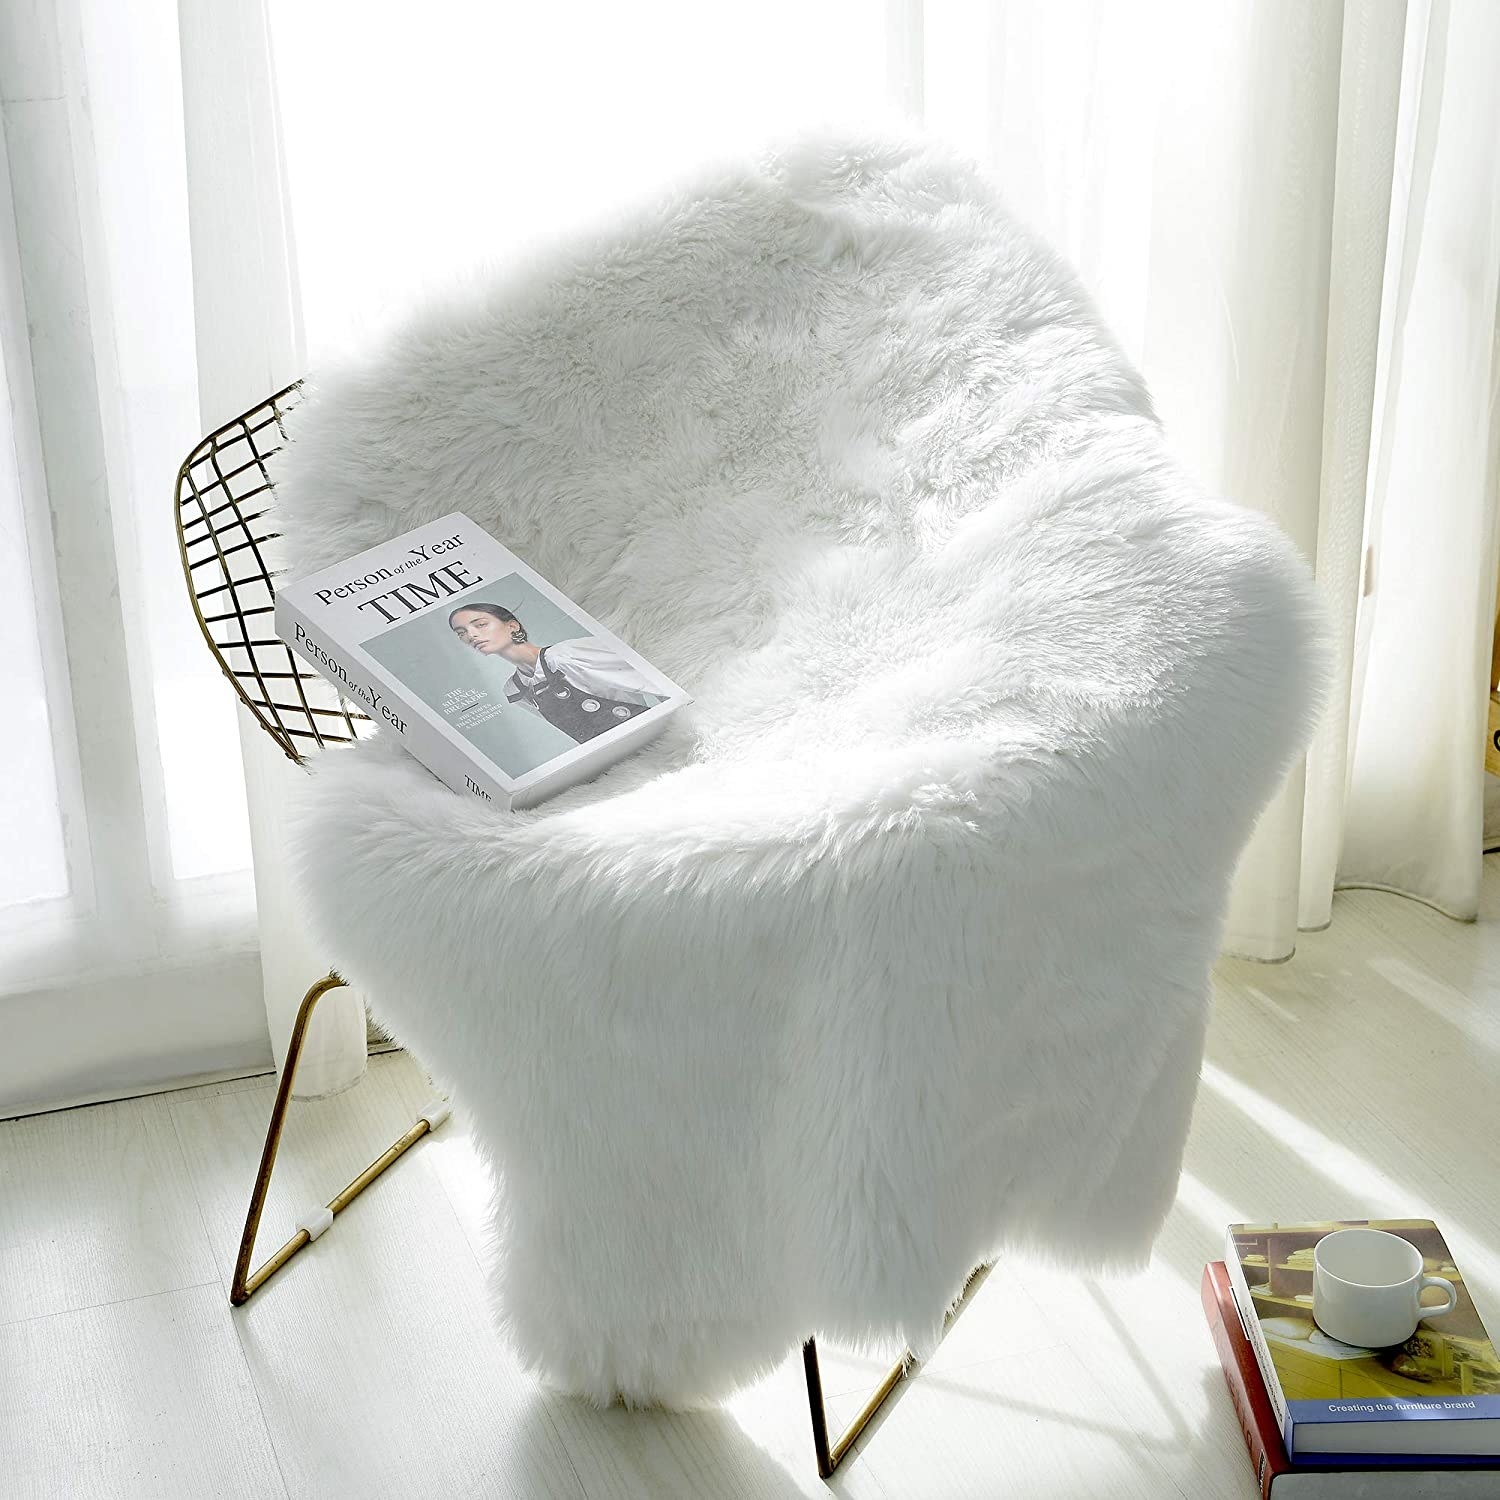 A faux fur rug draped over a wire chair